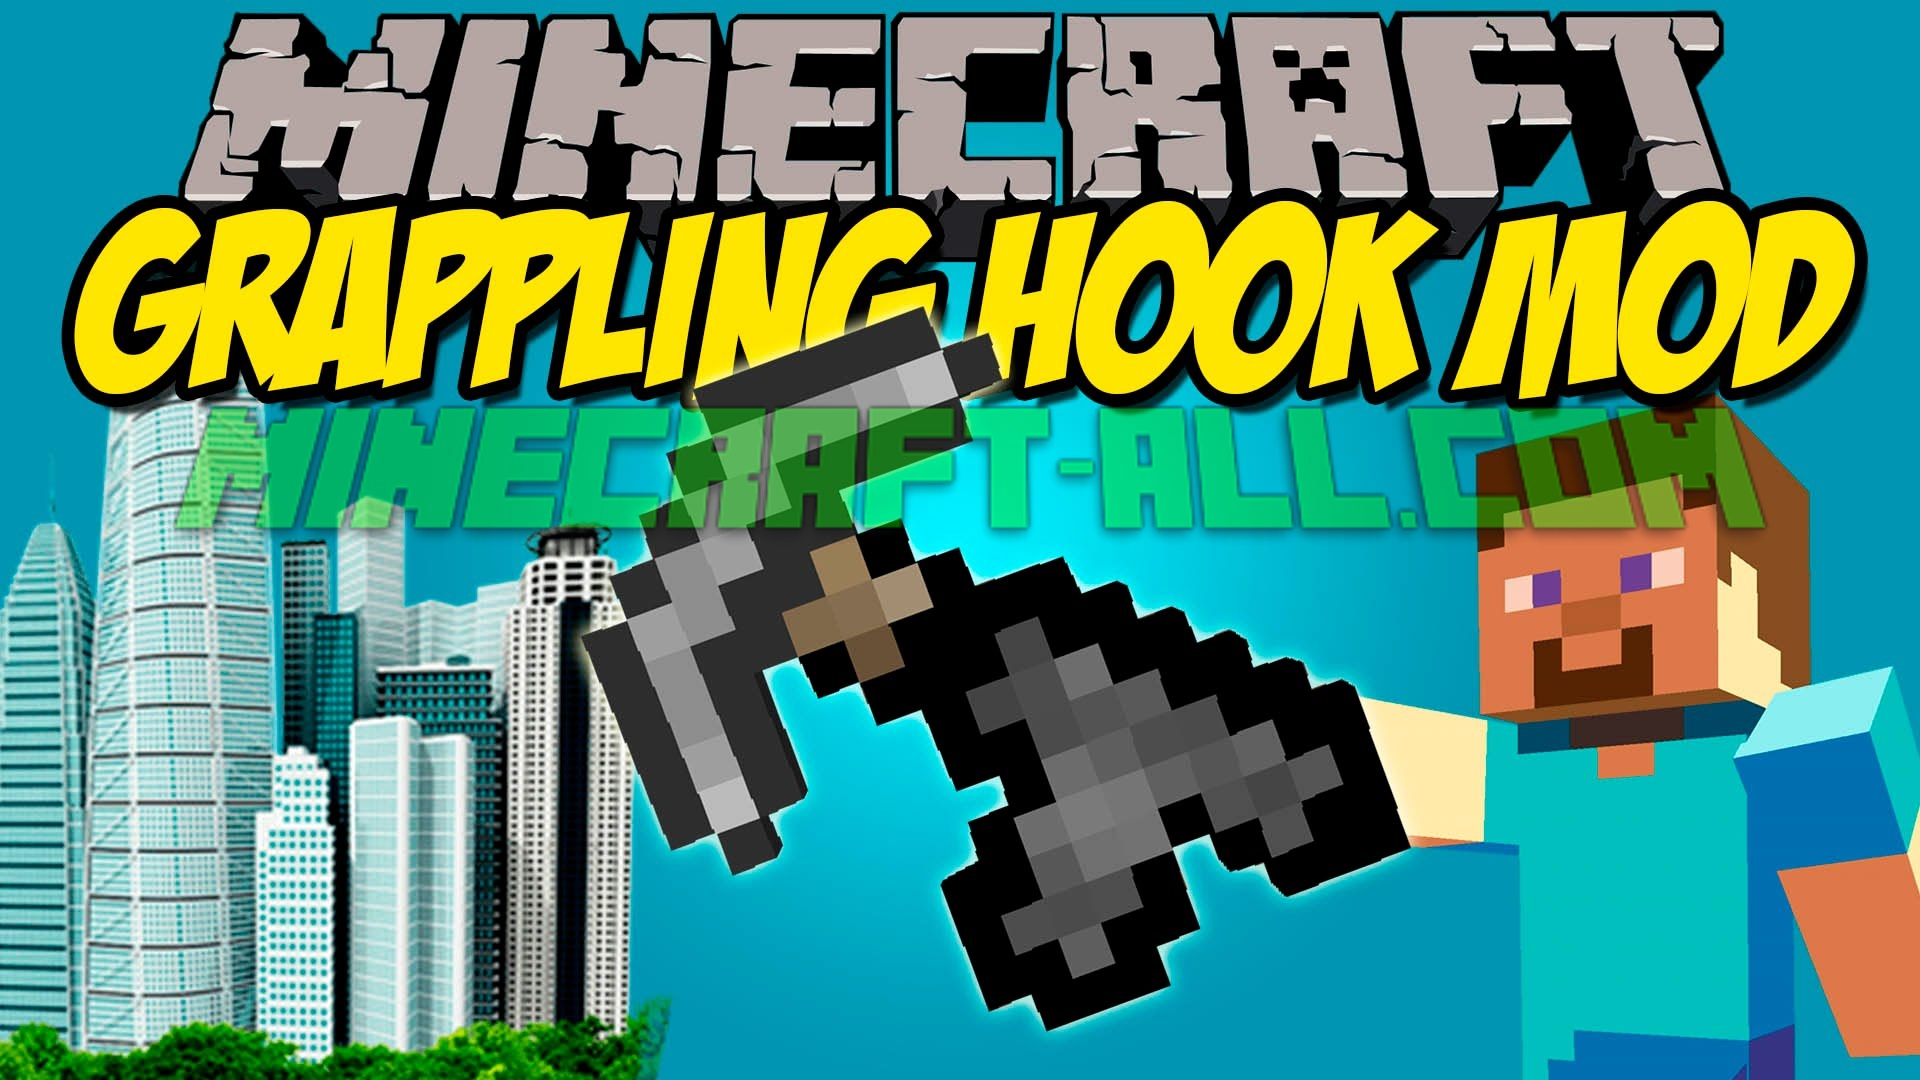 Grappling-Hook-Mod